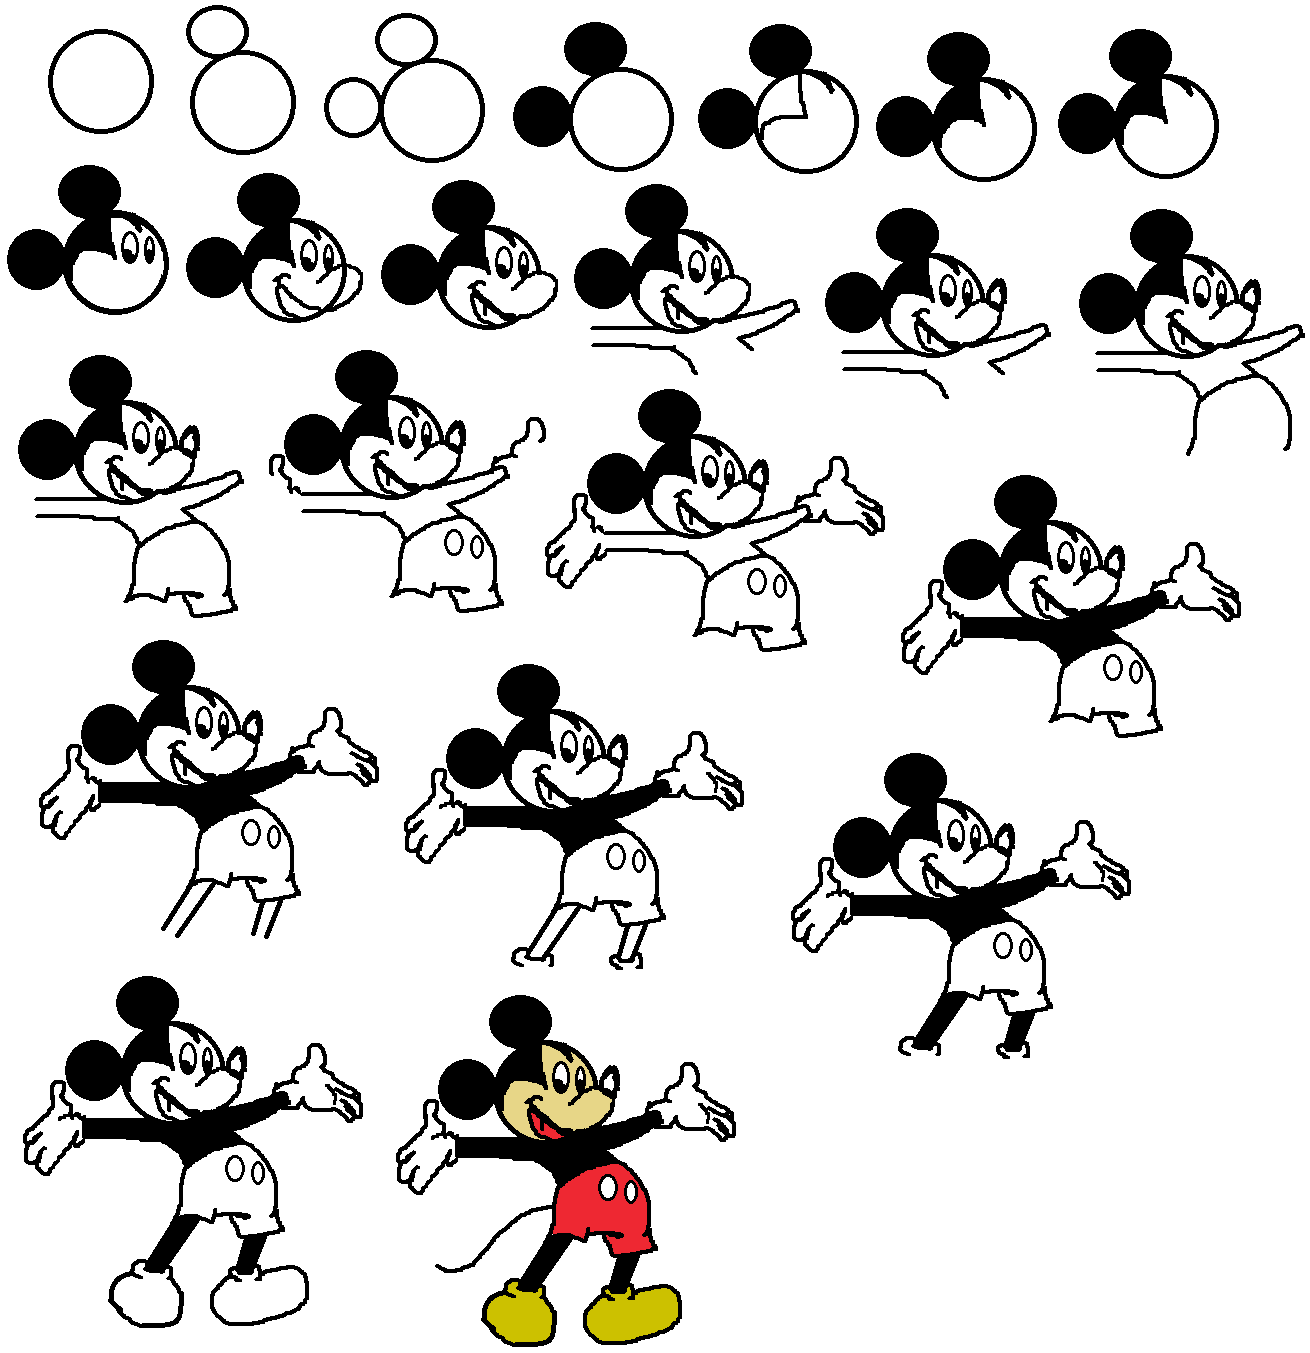 Mickey mouse on pinterest mickey mouse art mice and for How do you draw a mouse